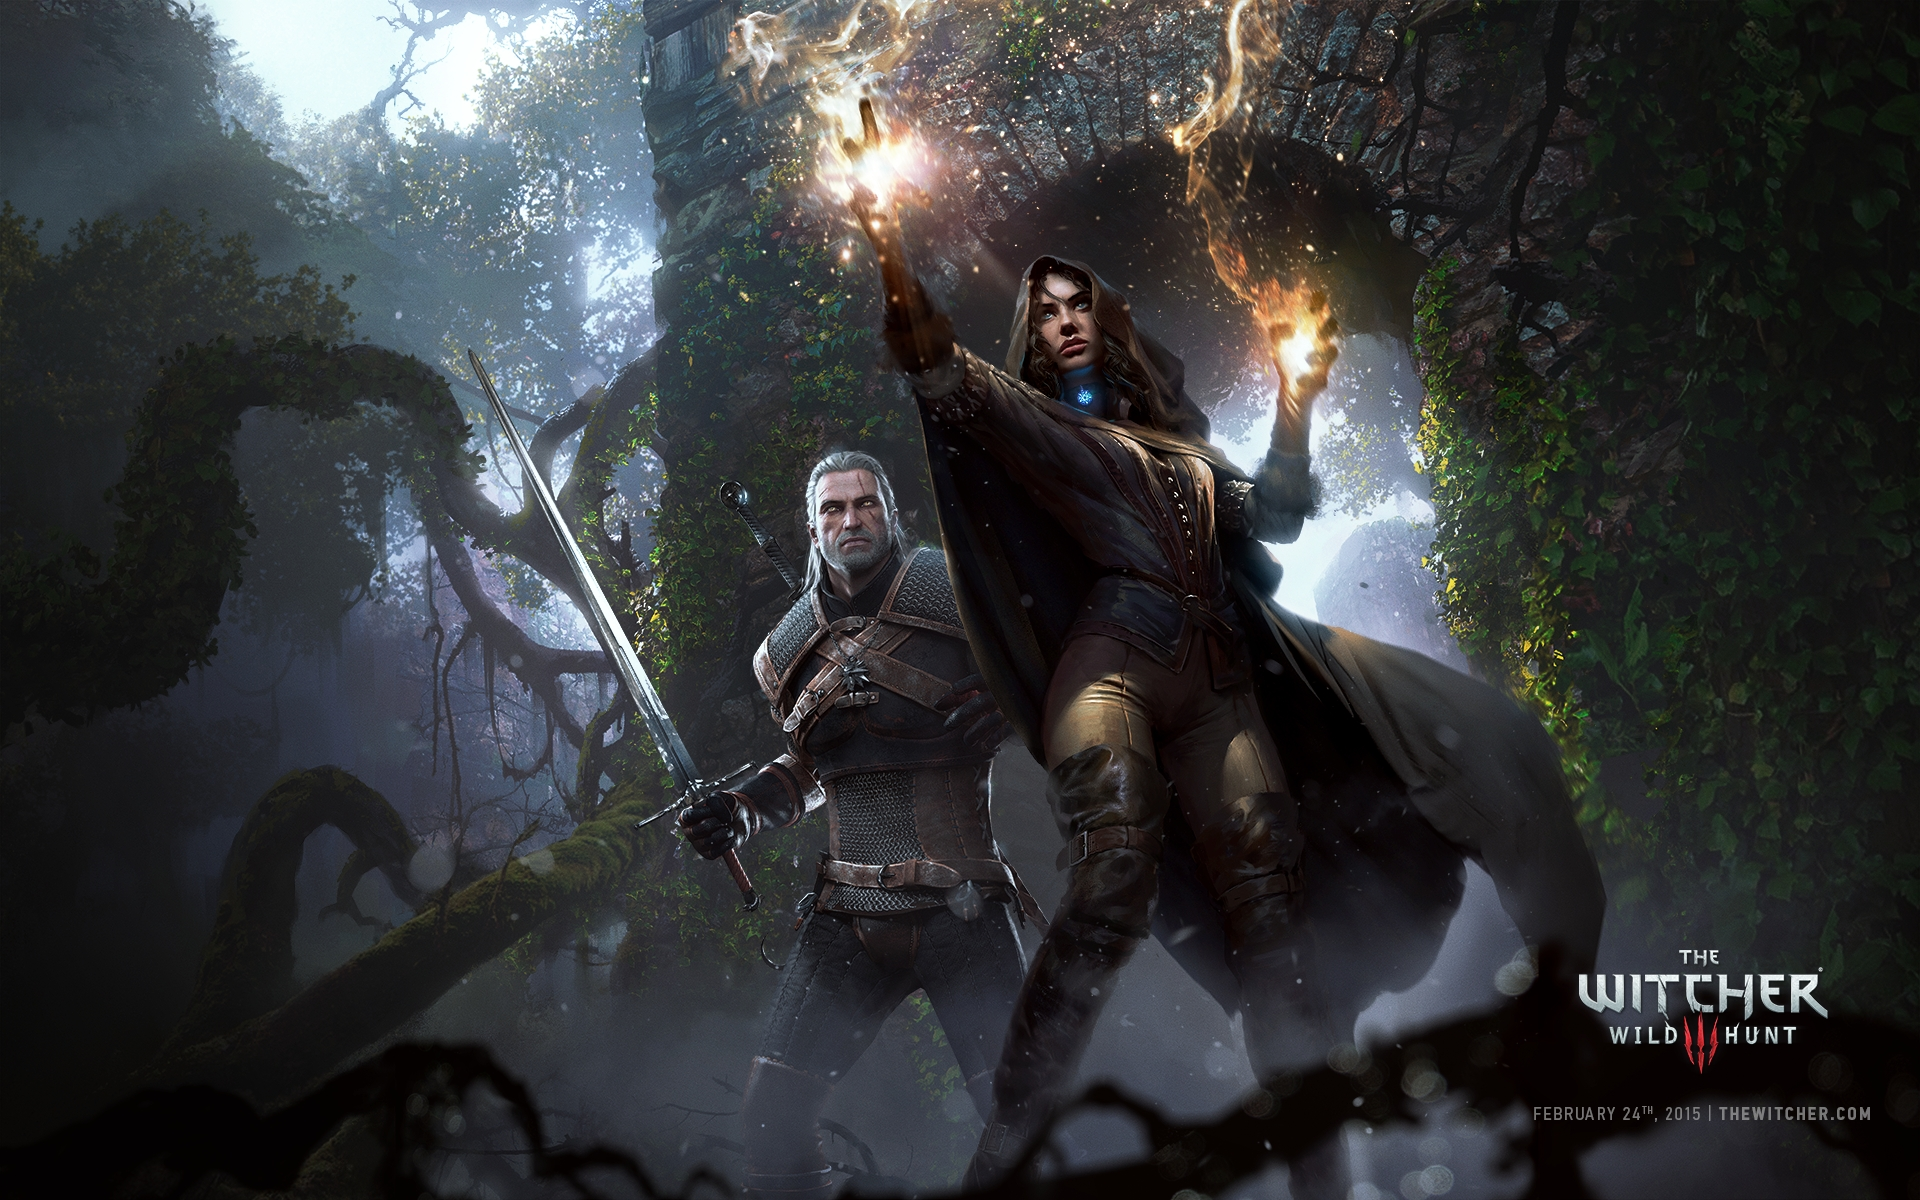 The Witcher Wallpaper 1920x1200 68007